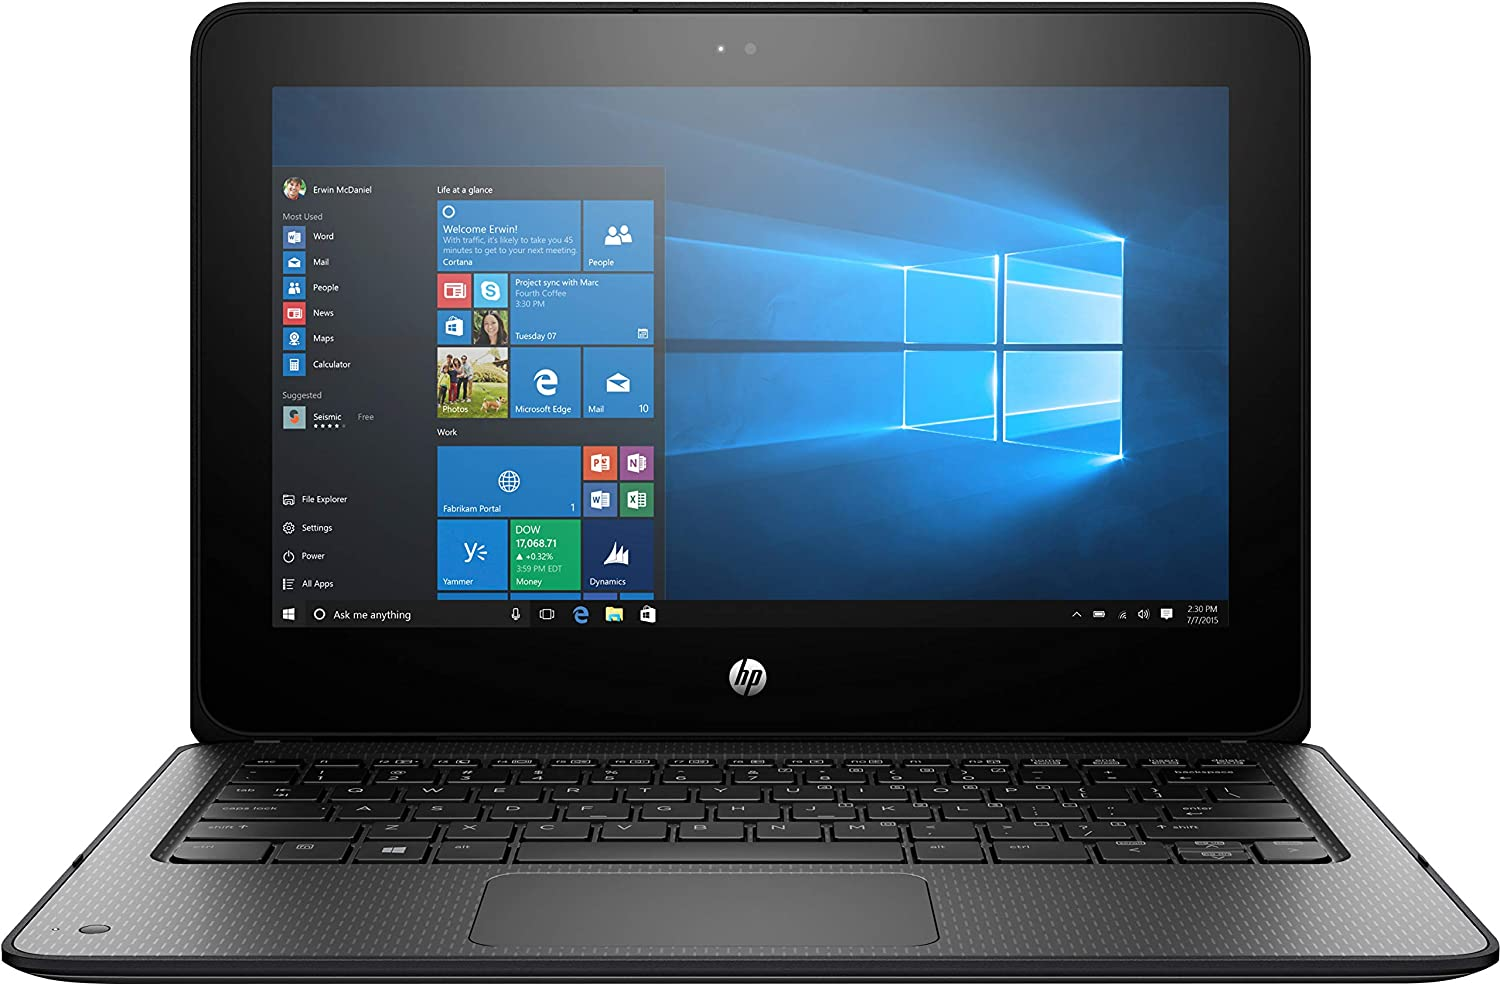 HP ProBook 11.6 Inch Touchscreen 2 in 1 Laptop